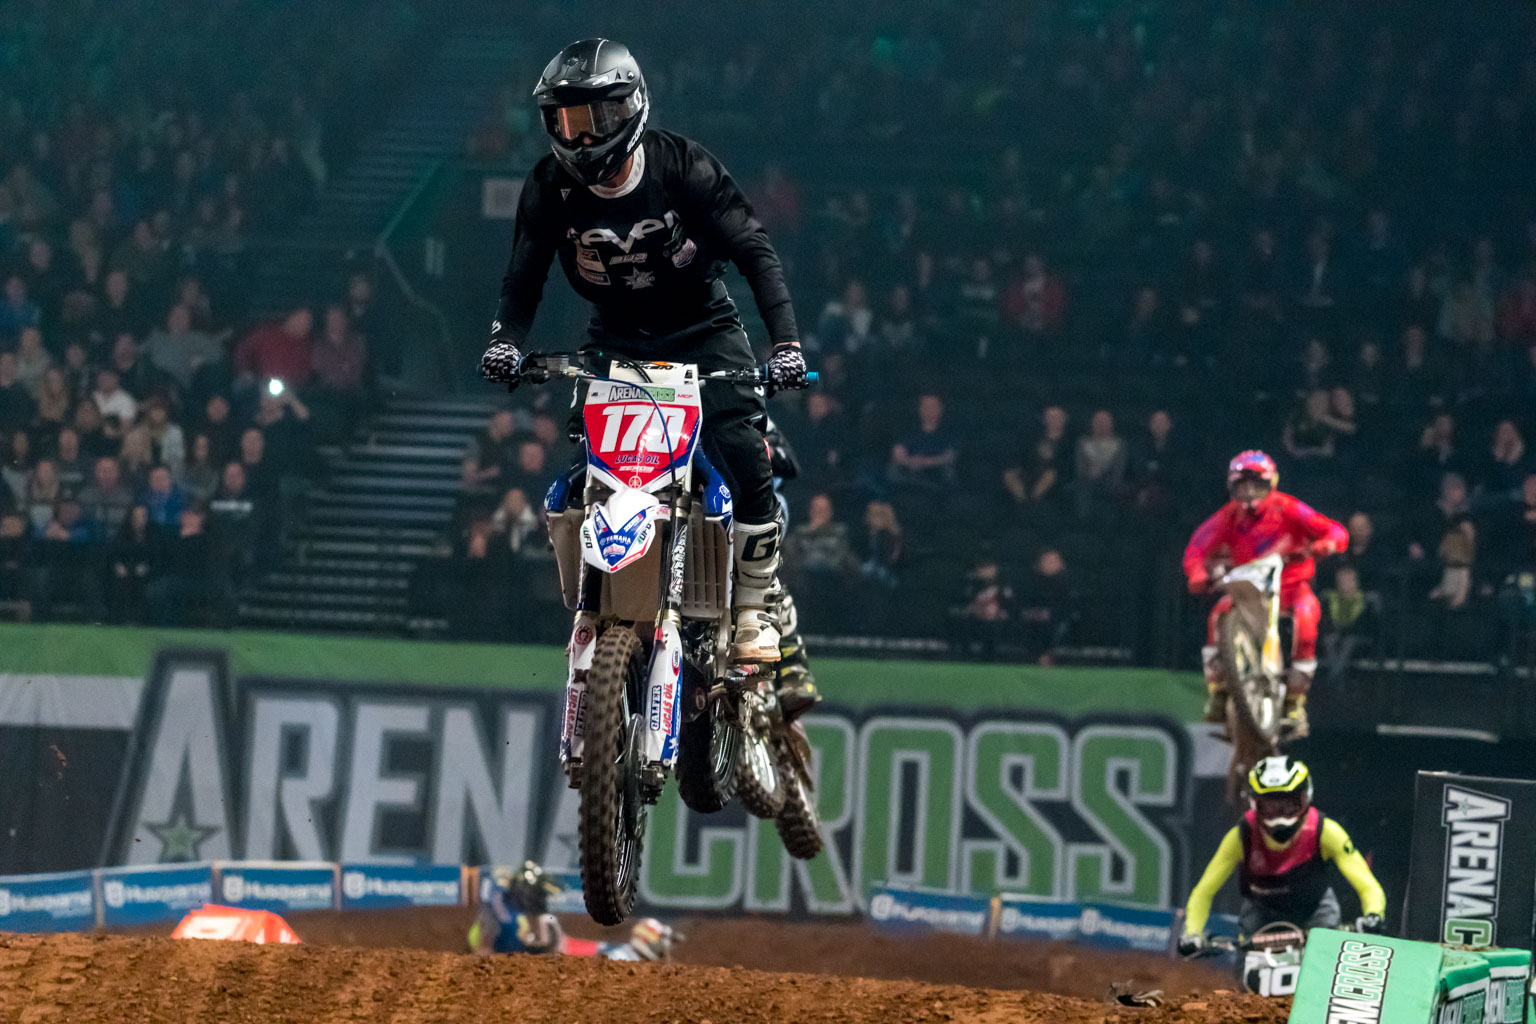 Irsuti dominated the pro Lites